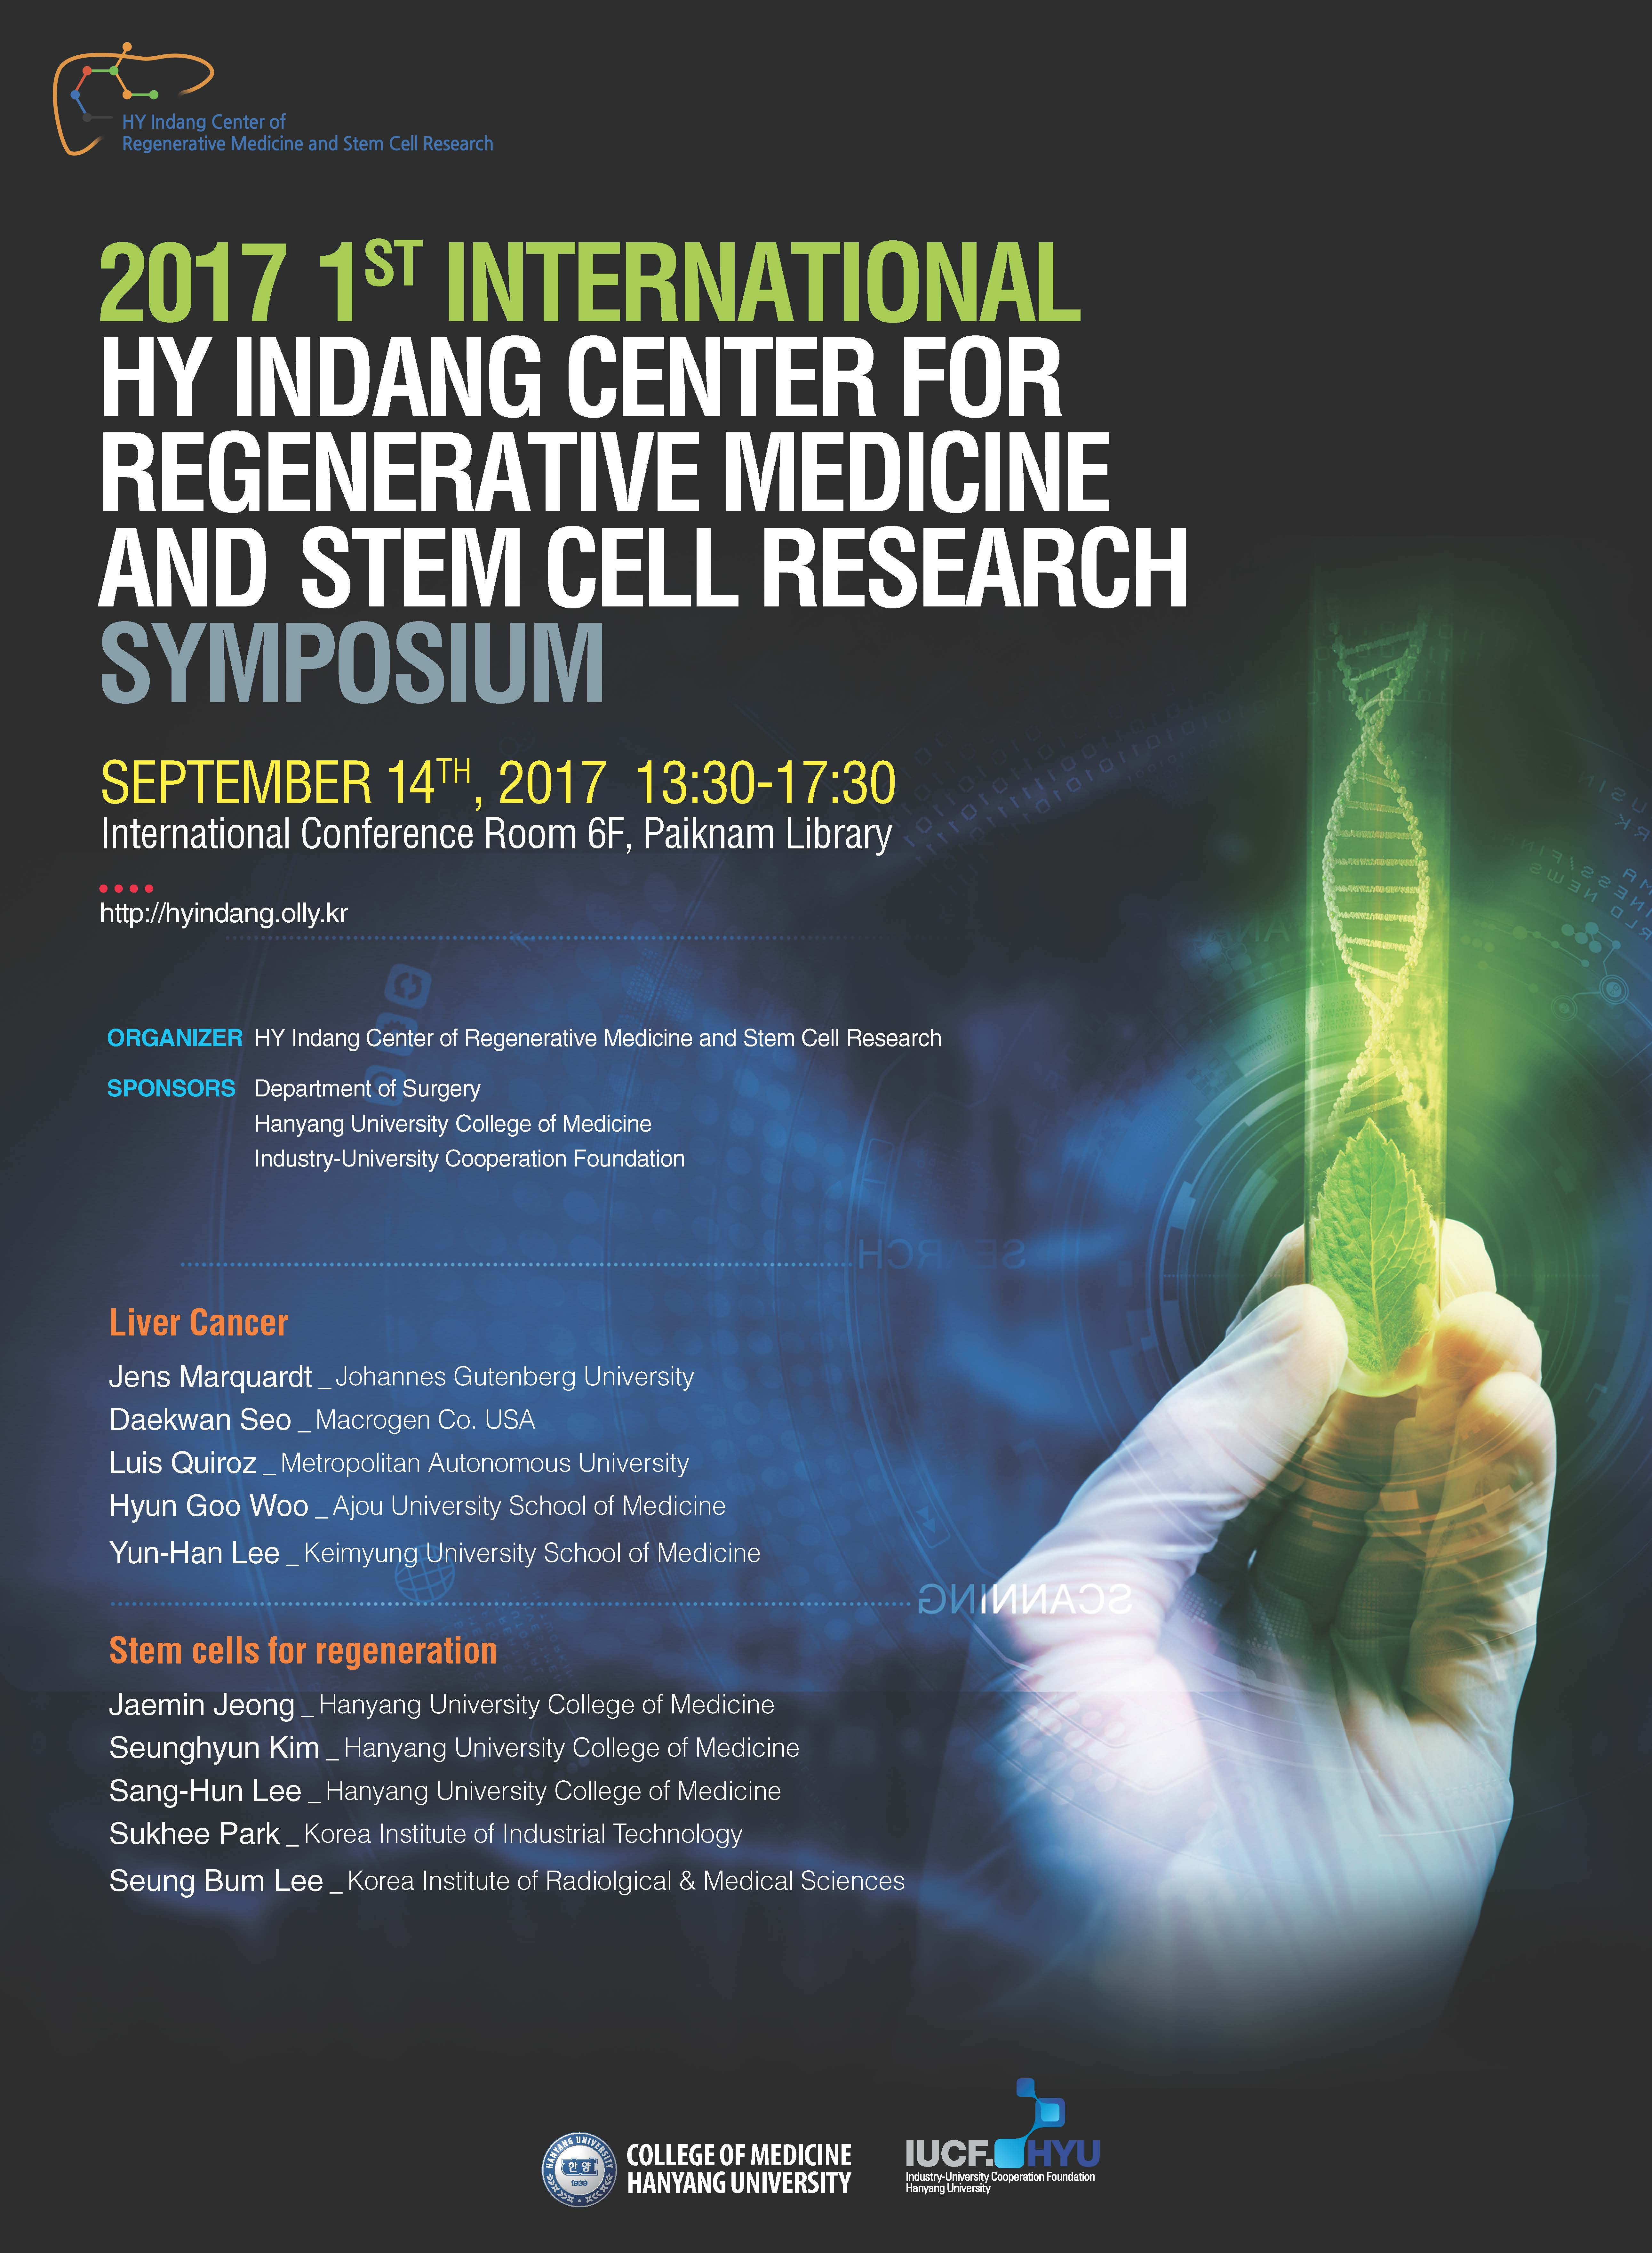 [2017.09.14] 2017 1st International HY Indang Center for Regenerative Medicine and Stem Cell Research Symposium